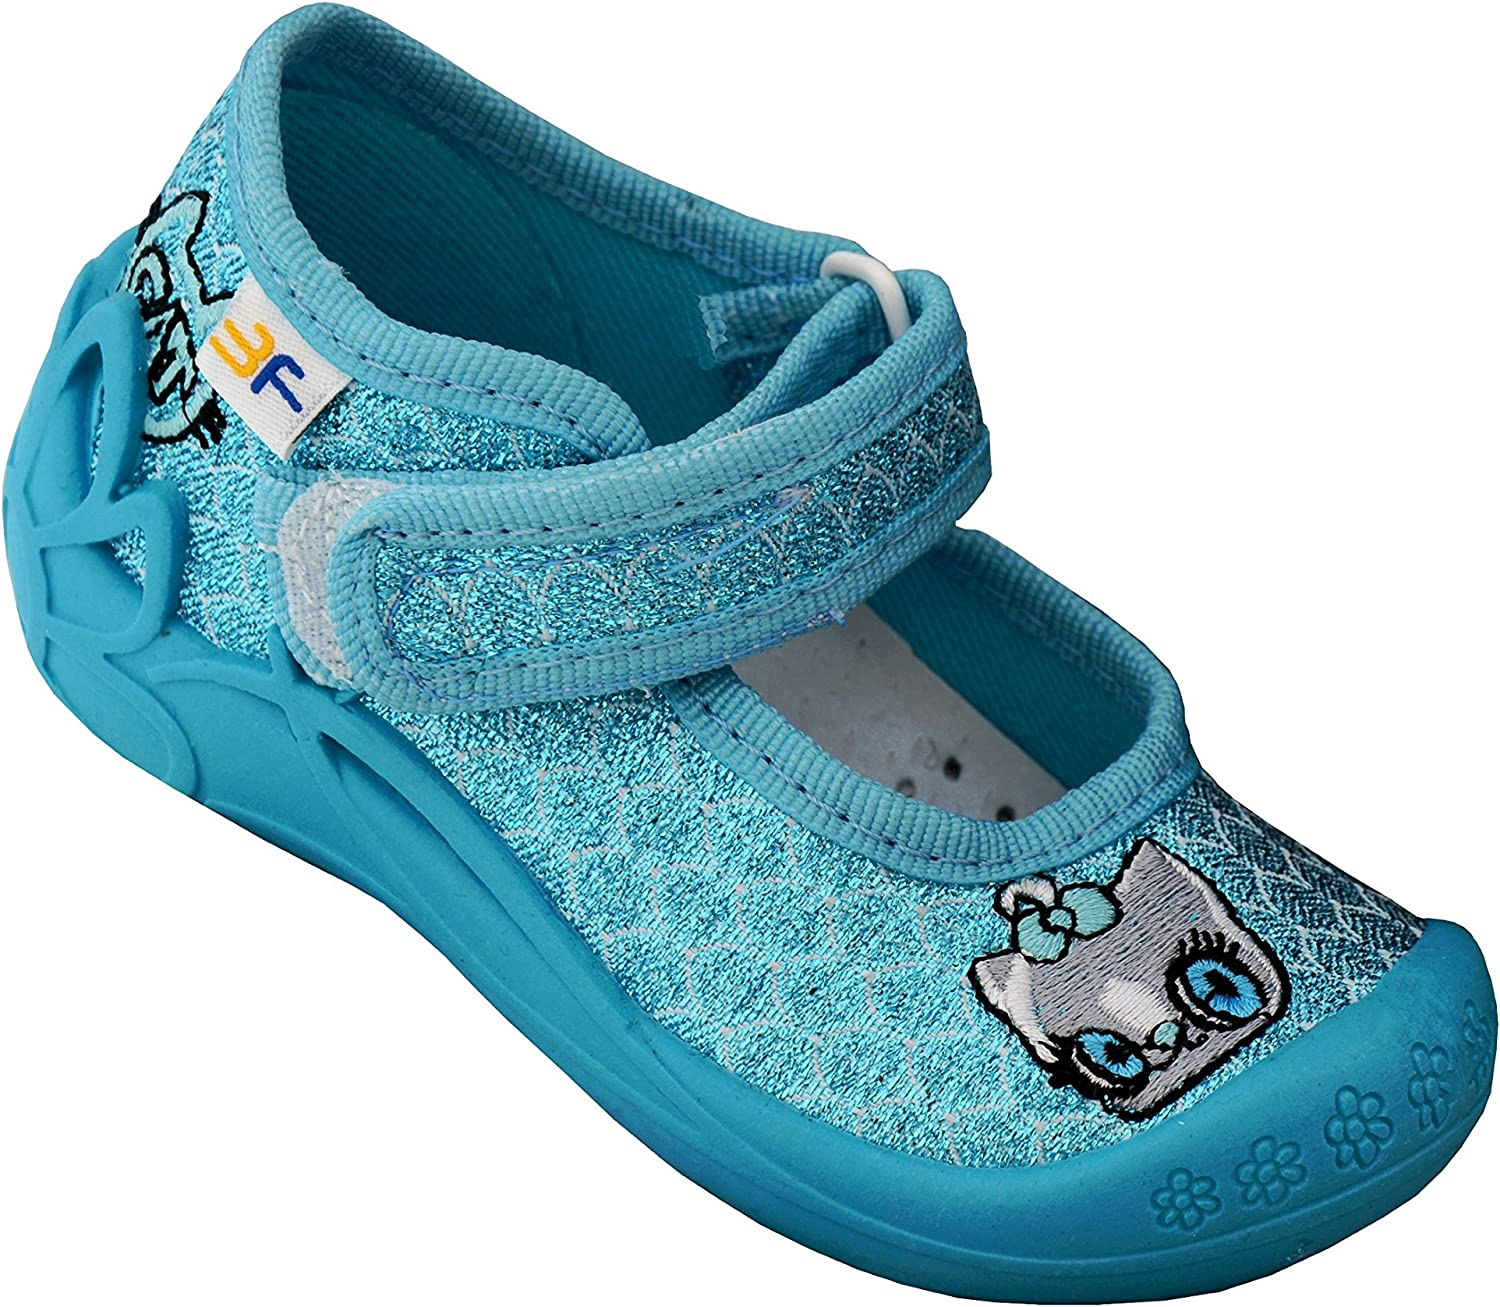 Mice Pink Hearts 2.5-7.5 U 1-3 Years Little Girls Newborn Firts Walking Shoes with Touch Fastener and Leather Insole with Active Carbon Kids Baby Girls Shoes 3f freedom for feet Blue Dots